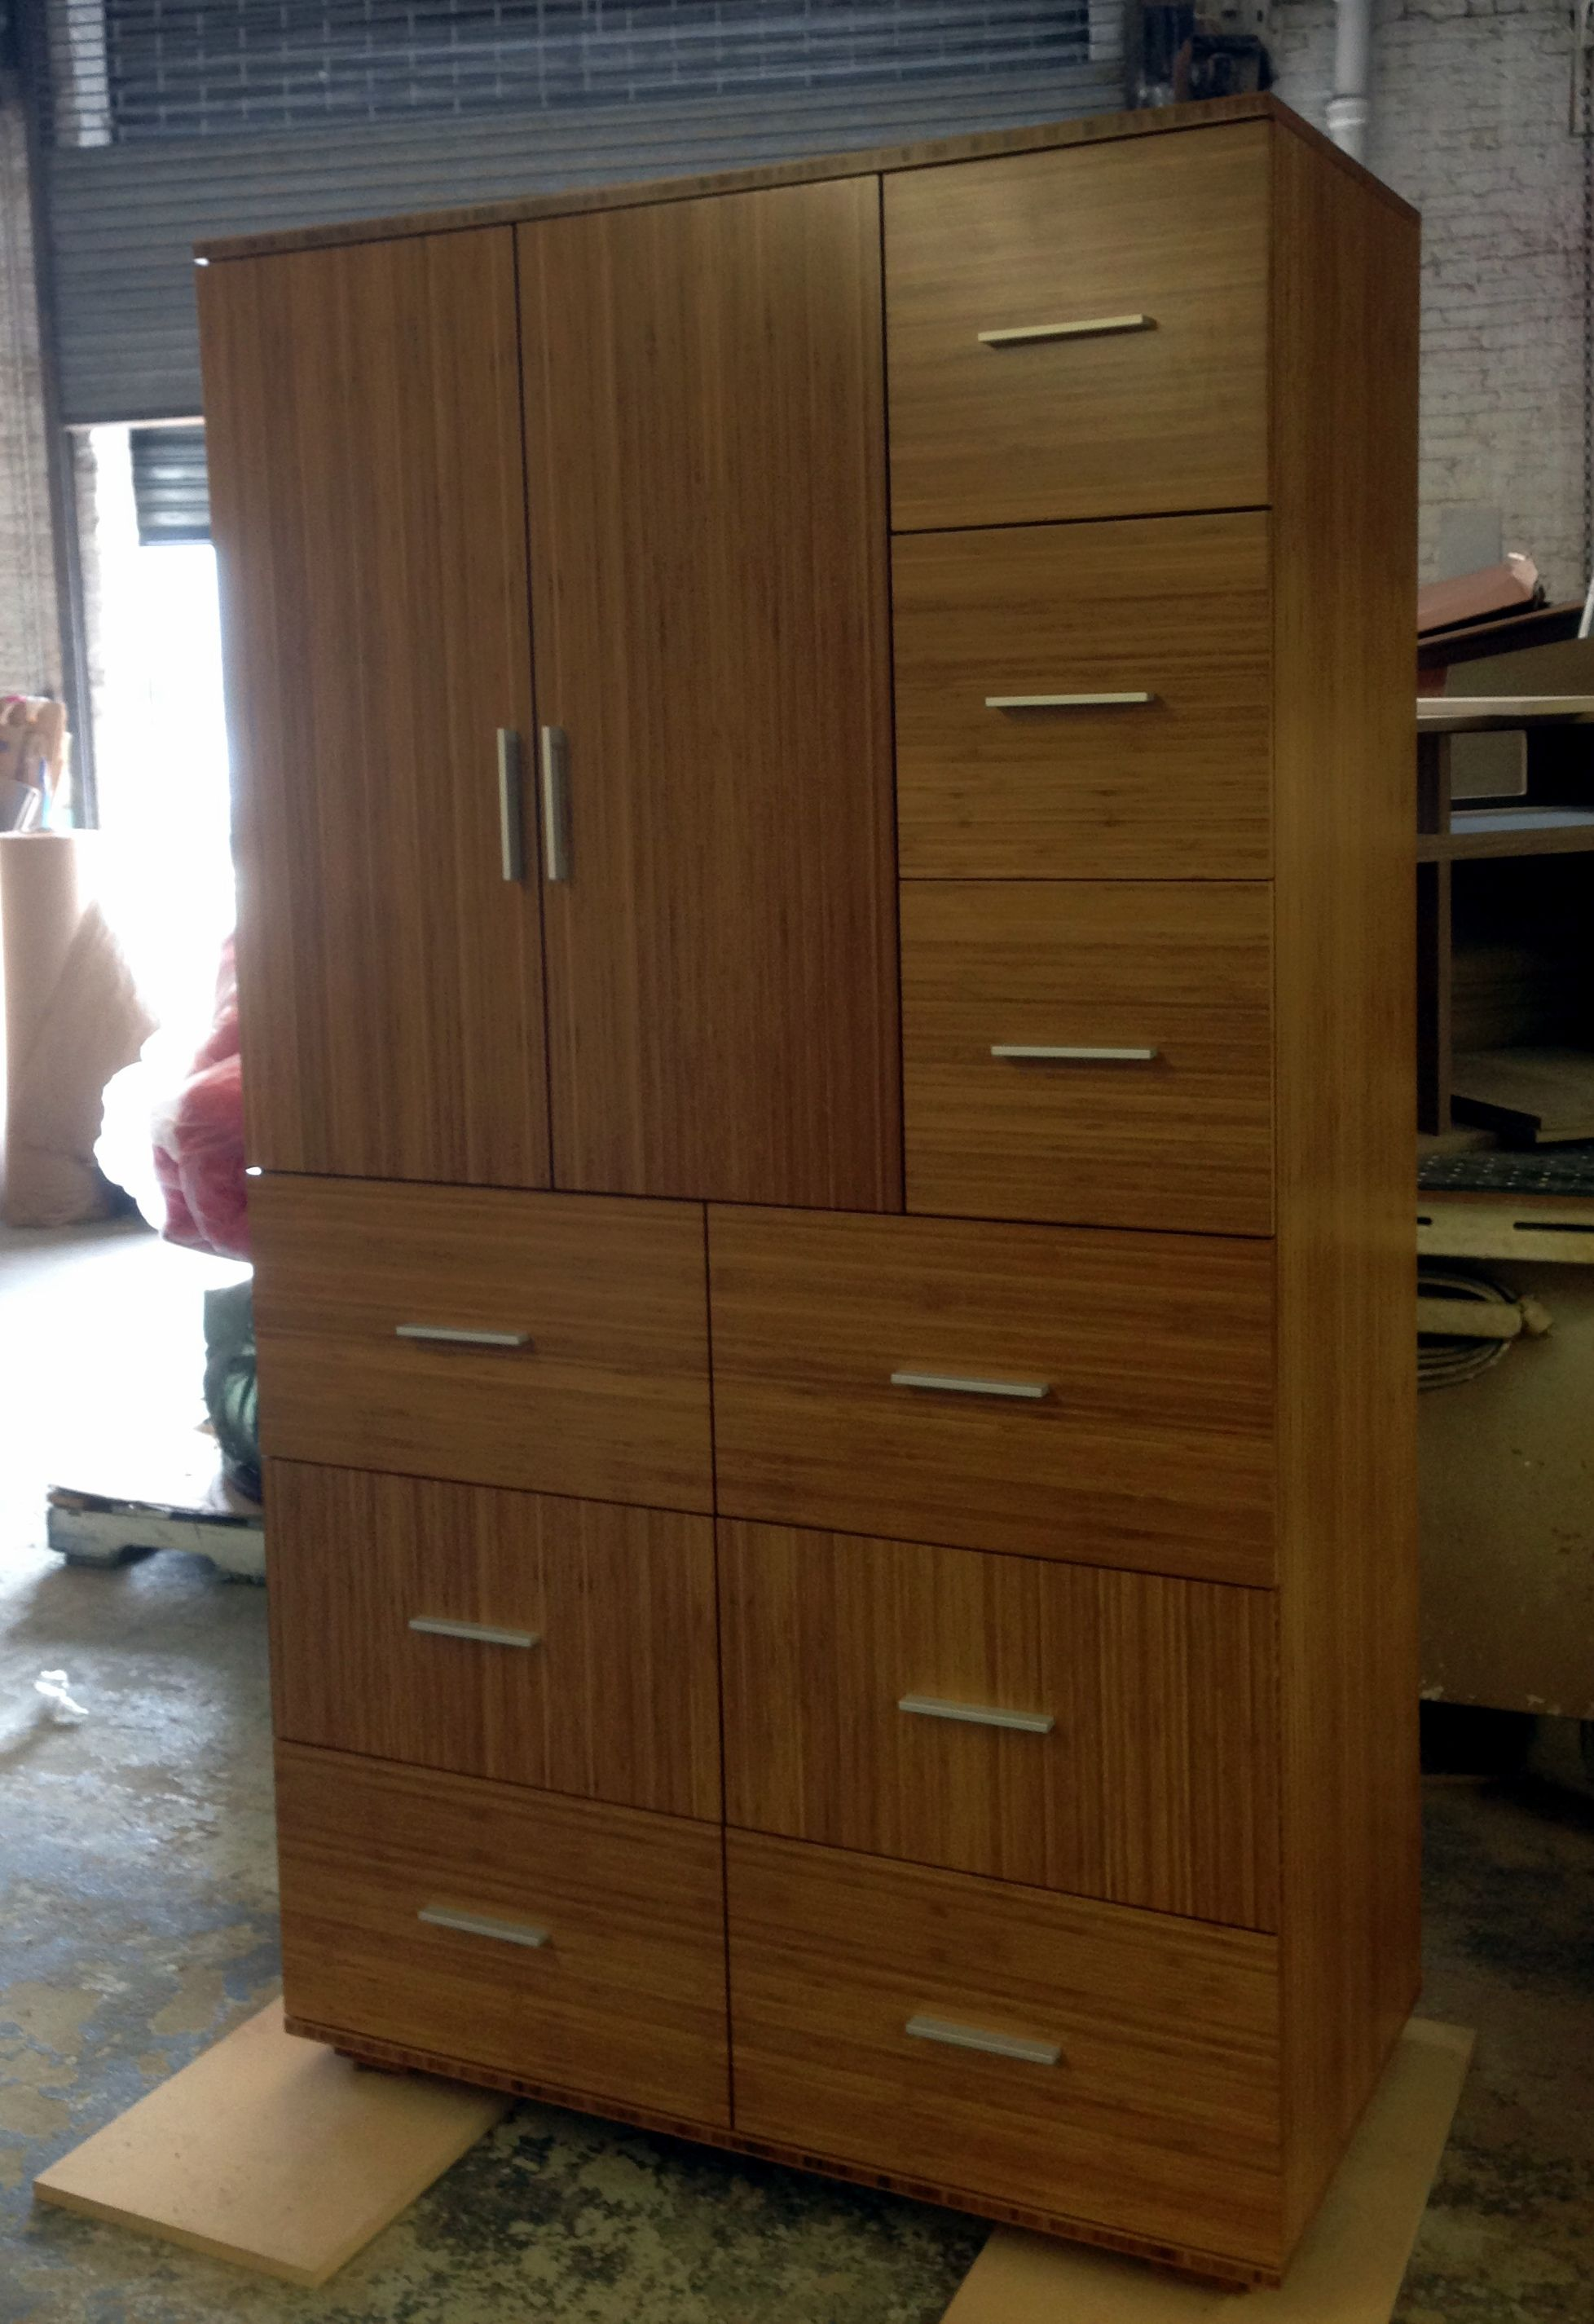 Merveilleux Image Result For Plyboo Cabinet